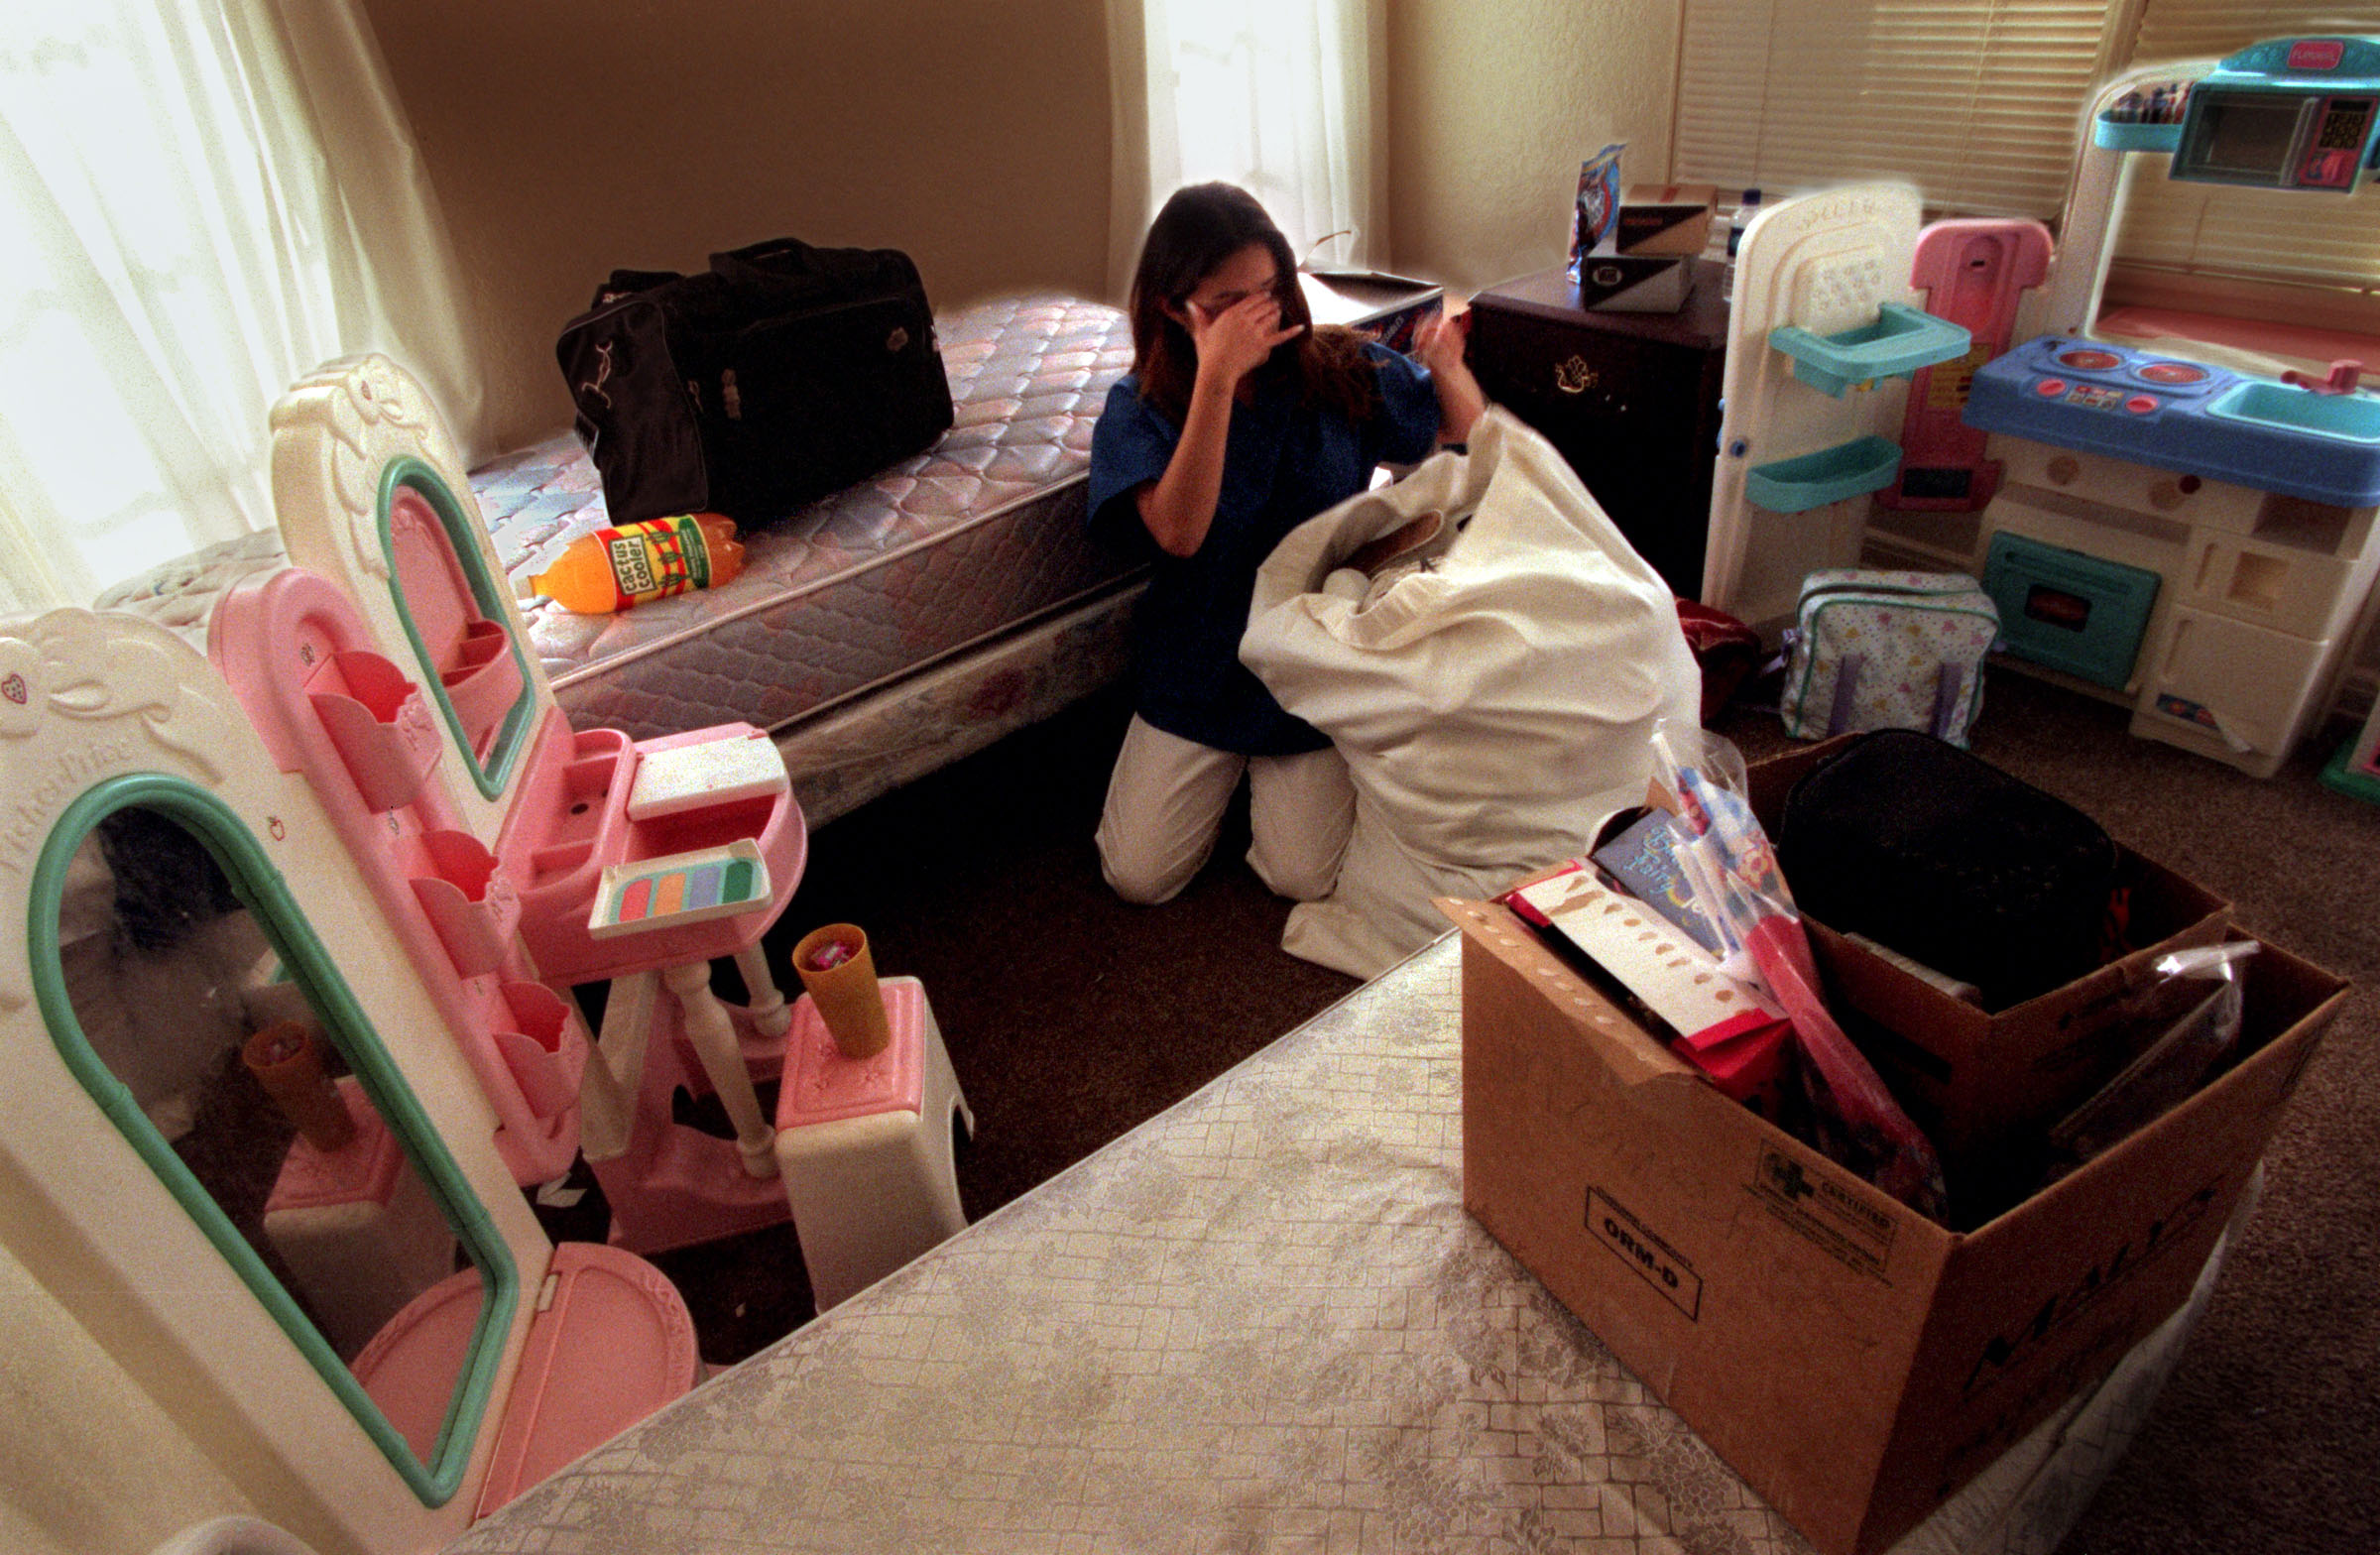 Monique packs up her belongings at Stepping Stones. She is asked to leave after getting in a fight with one of her roommates and not following the house rules. ©Gail Fisher Los Angeles Times